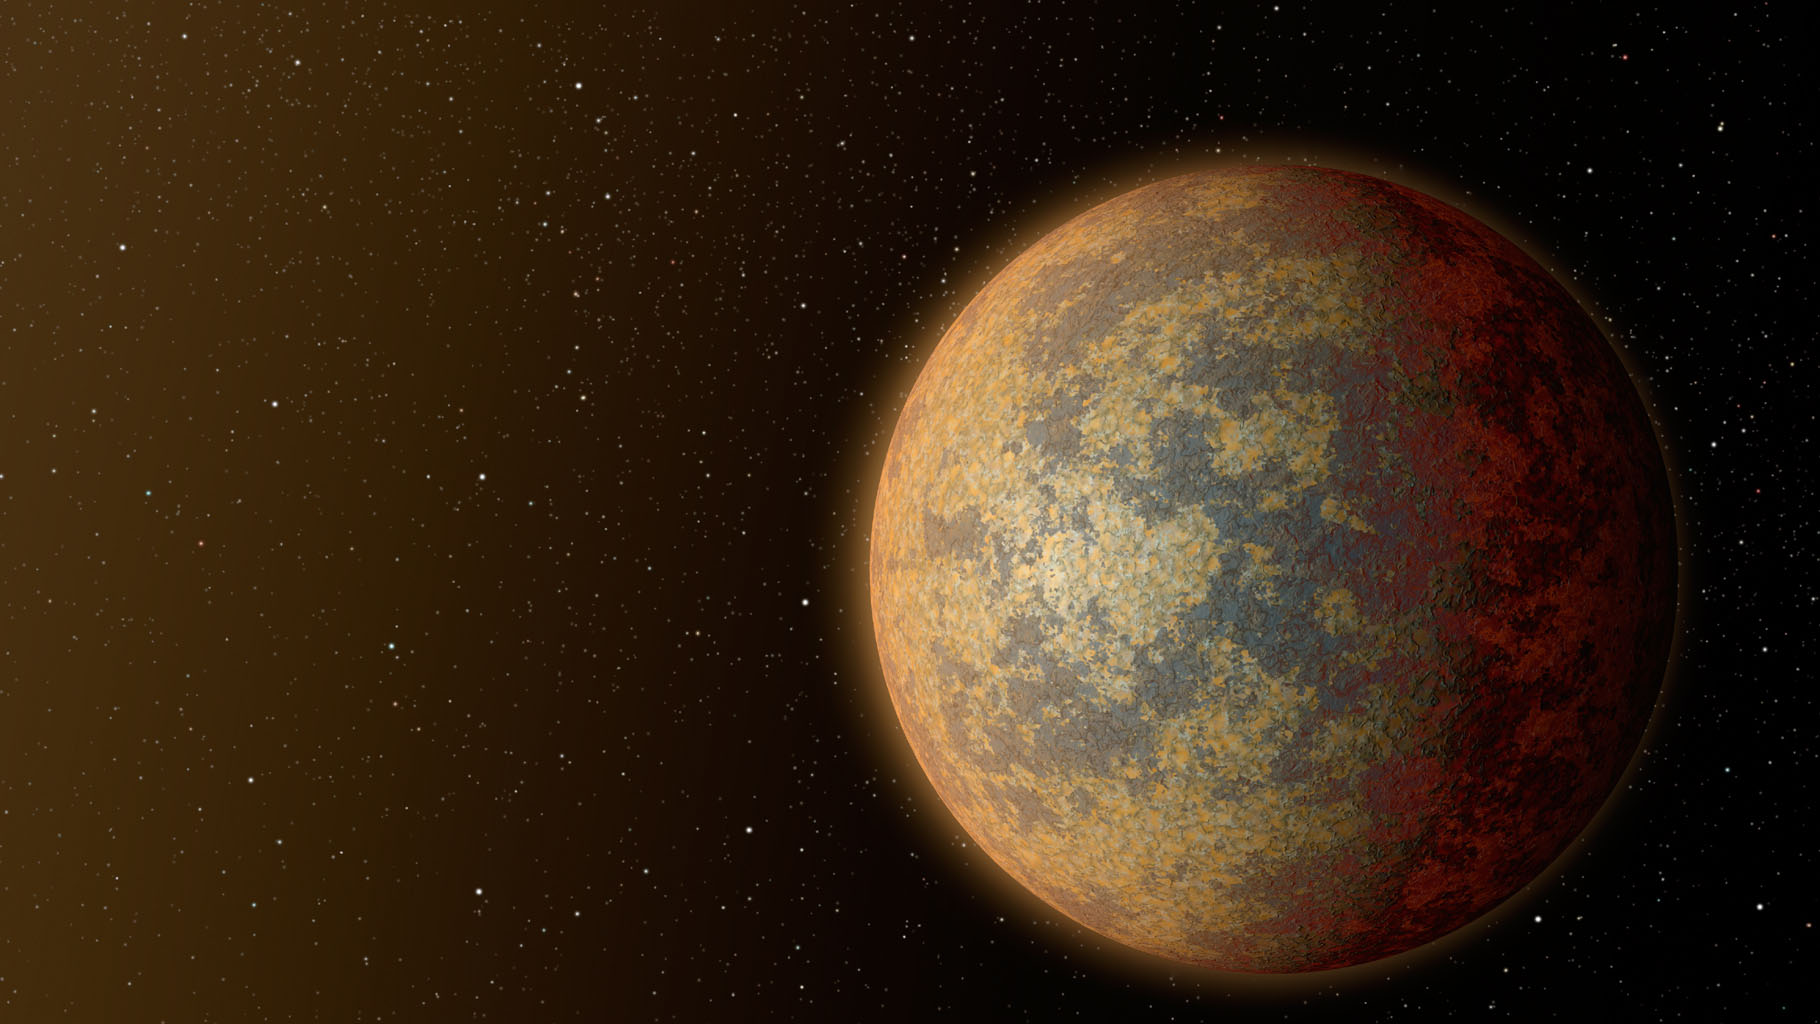 This artist's rendition shows one possible appearance for the planet HD 219134b, the nearest confirmed rocky exoplanet found to date outside our solar system.